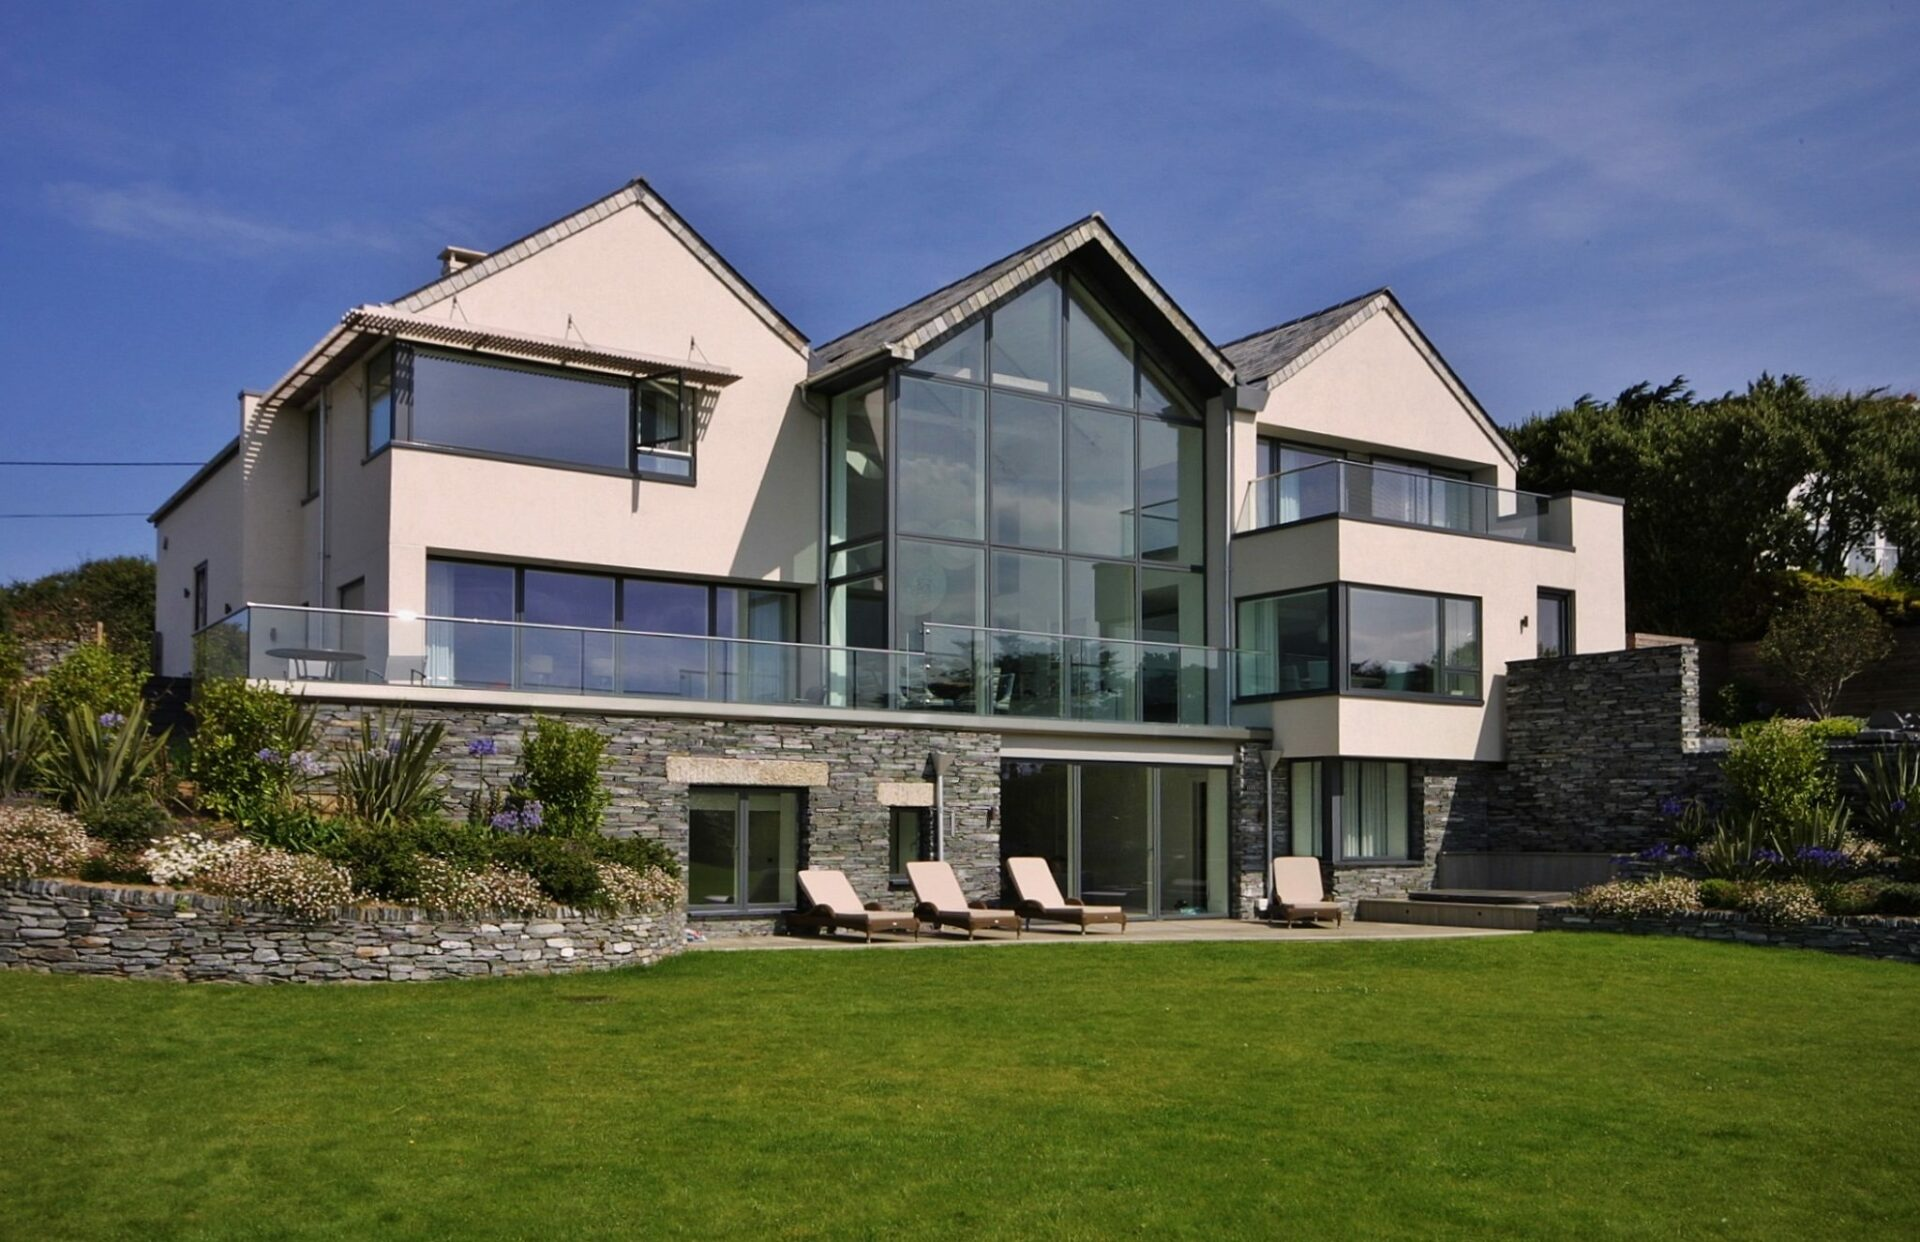 Trebetherick Cornwall stunning new build designed by ARCO2 Architects